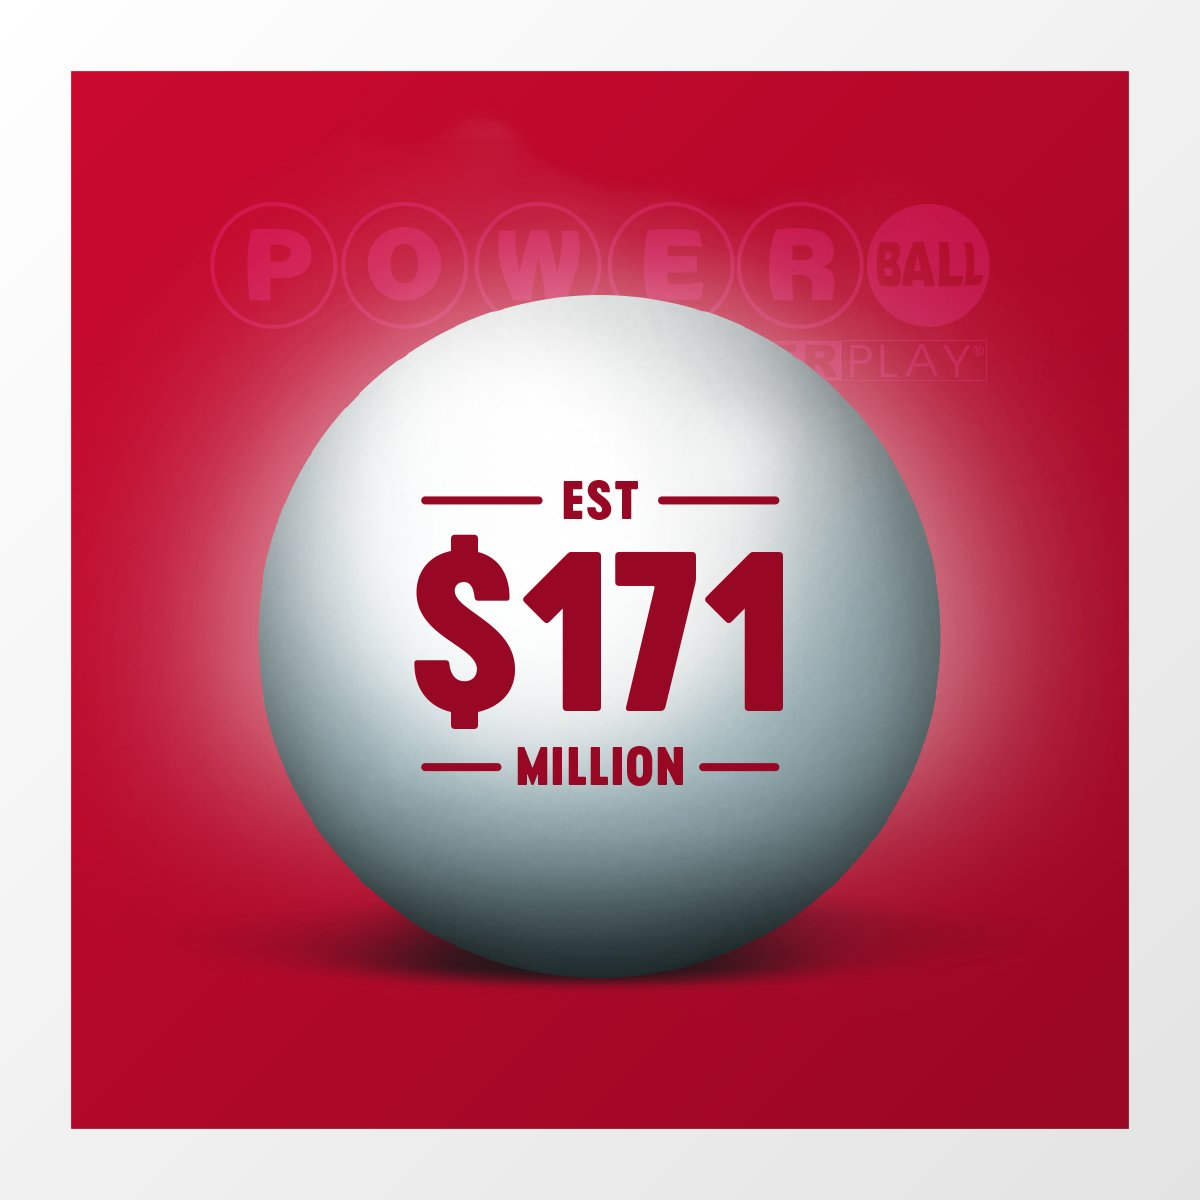 Mo Lottery On Twitter Don T Forget There Is A Powerball Drawing